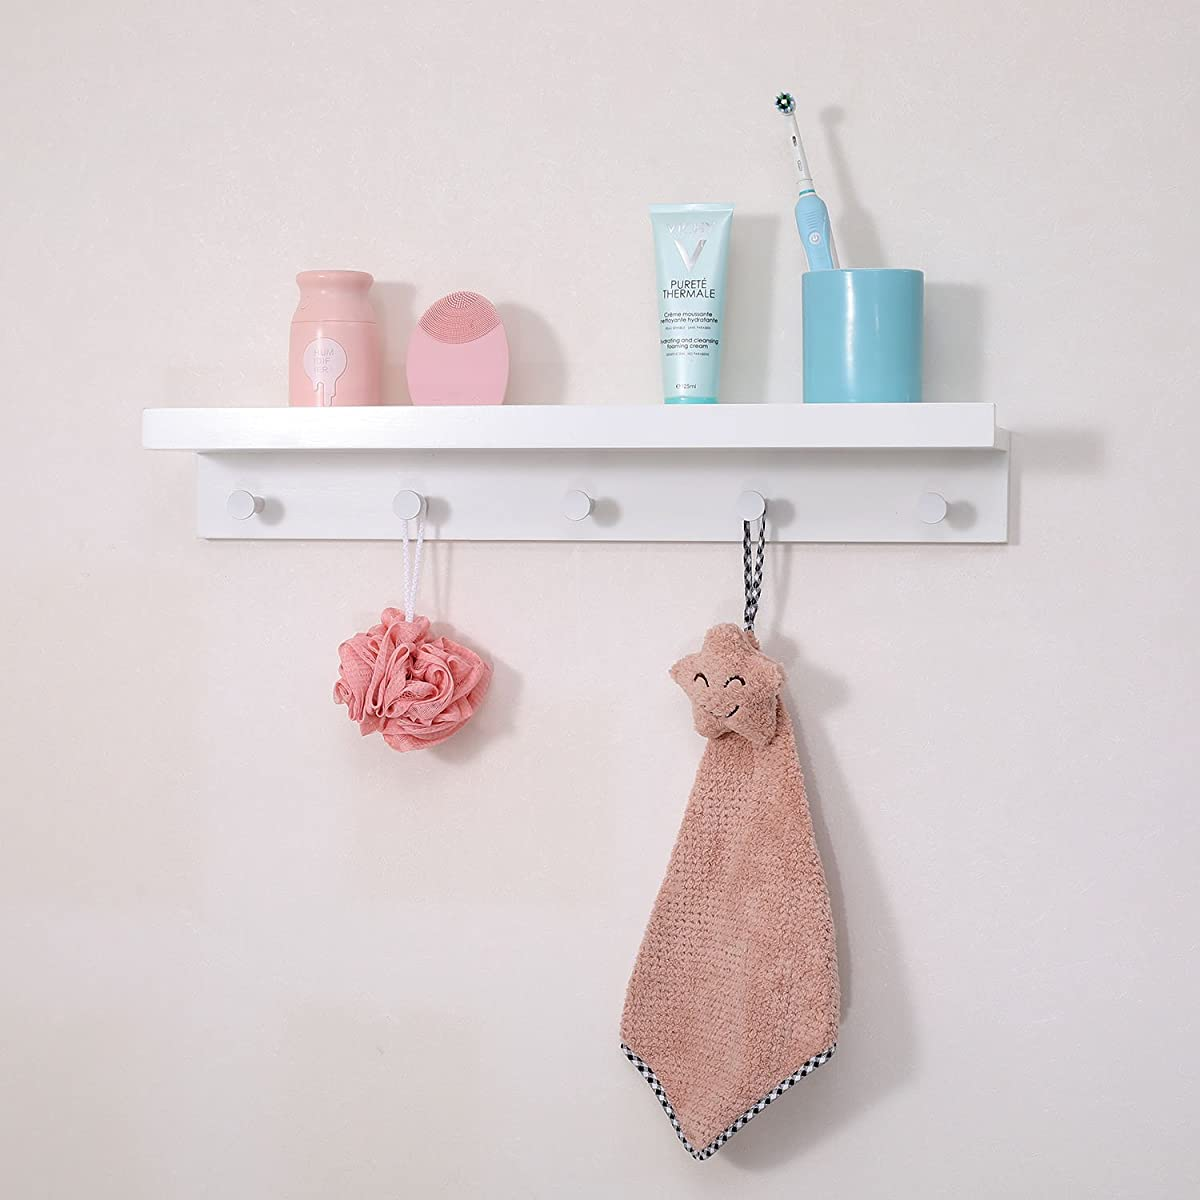 """Ollieroo Bamboo Wall Mounted Shelf, Coat Hooks Rack with 5 Alloy Hooks for Entryway, Bedroom, Kitchen, Bathroom, Length 24"""" (White)"""